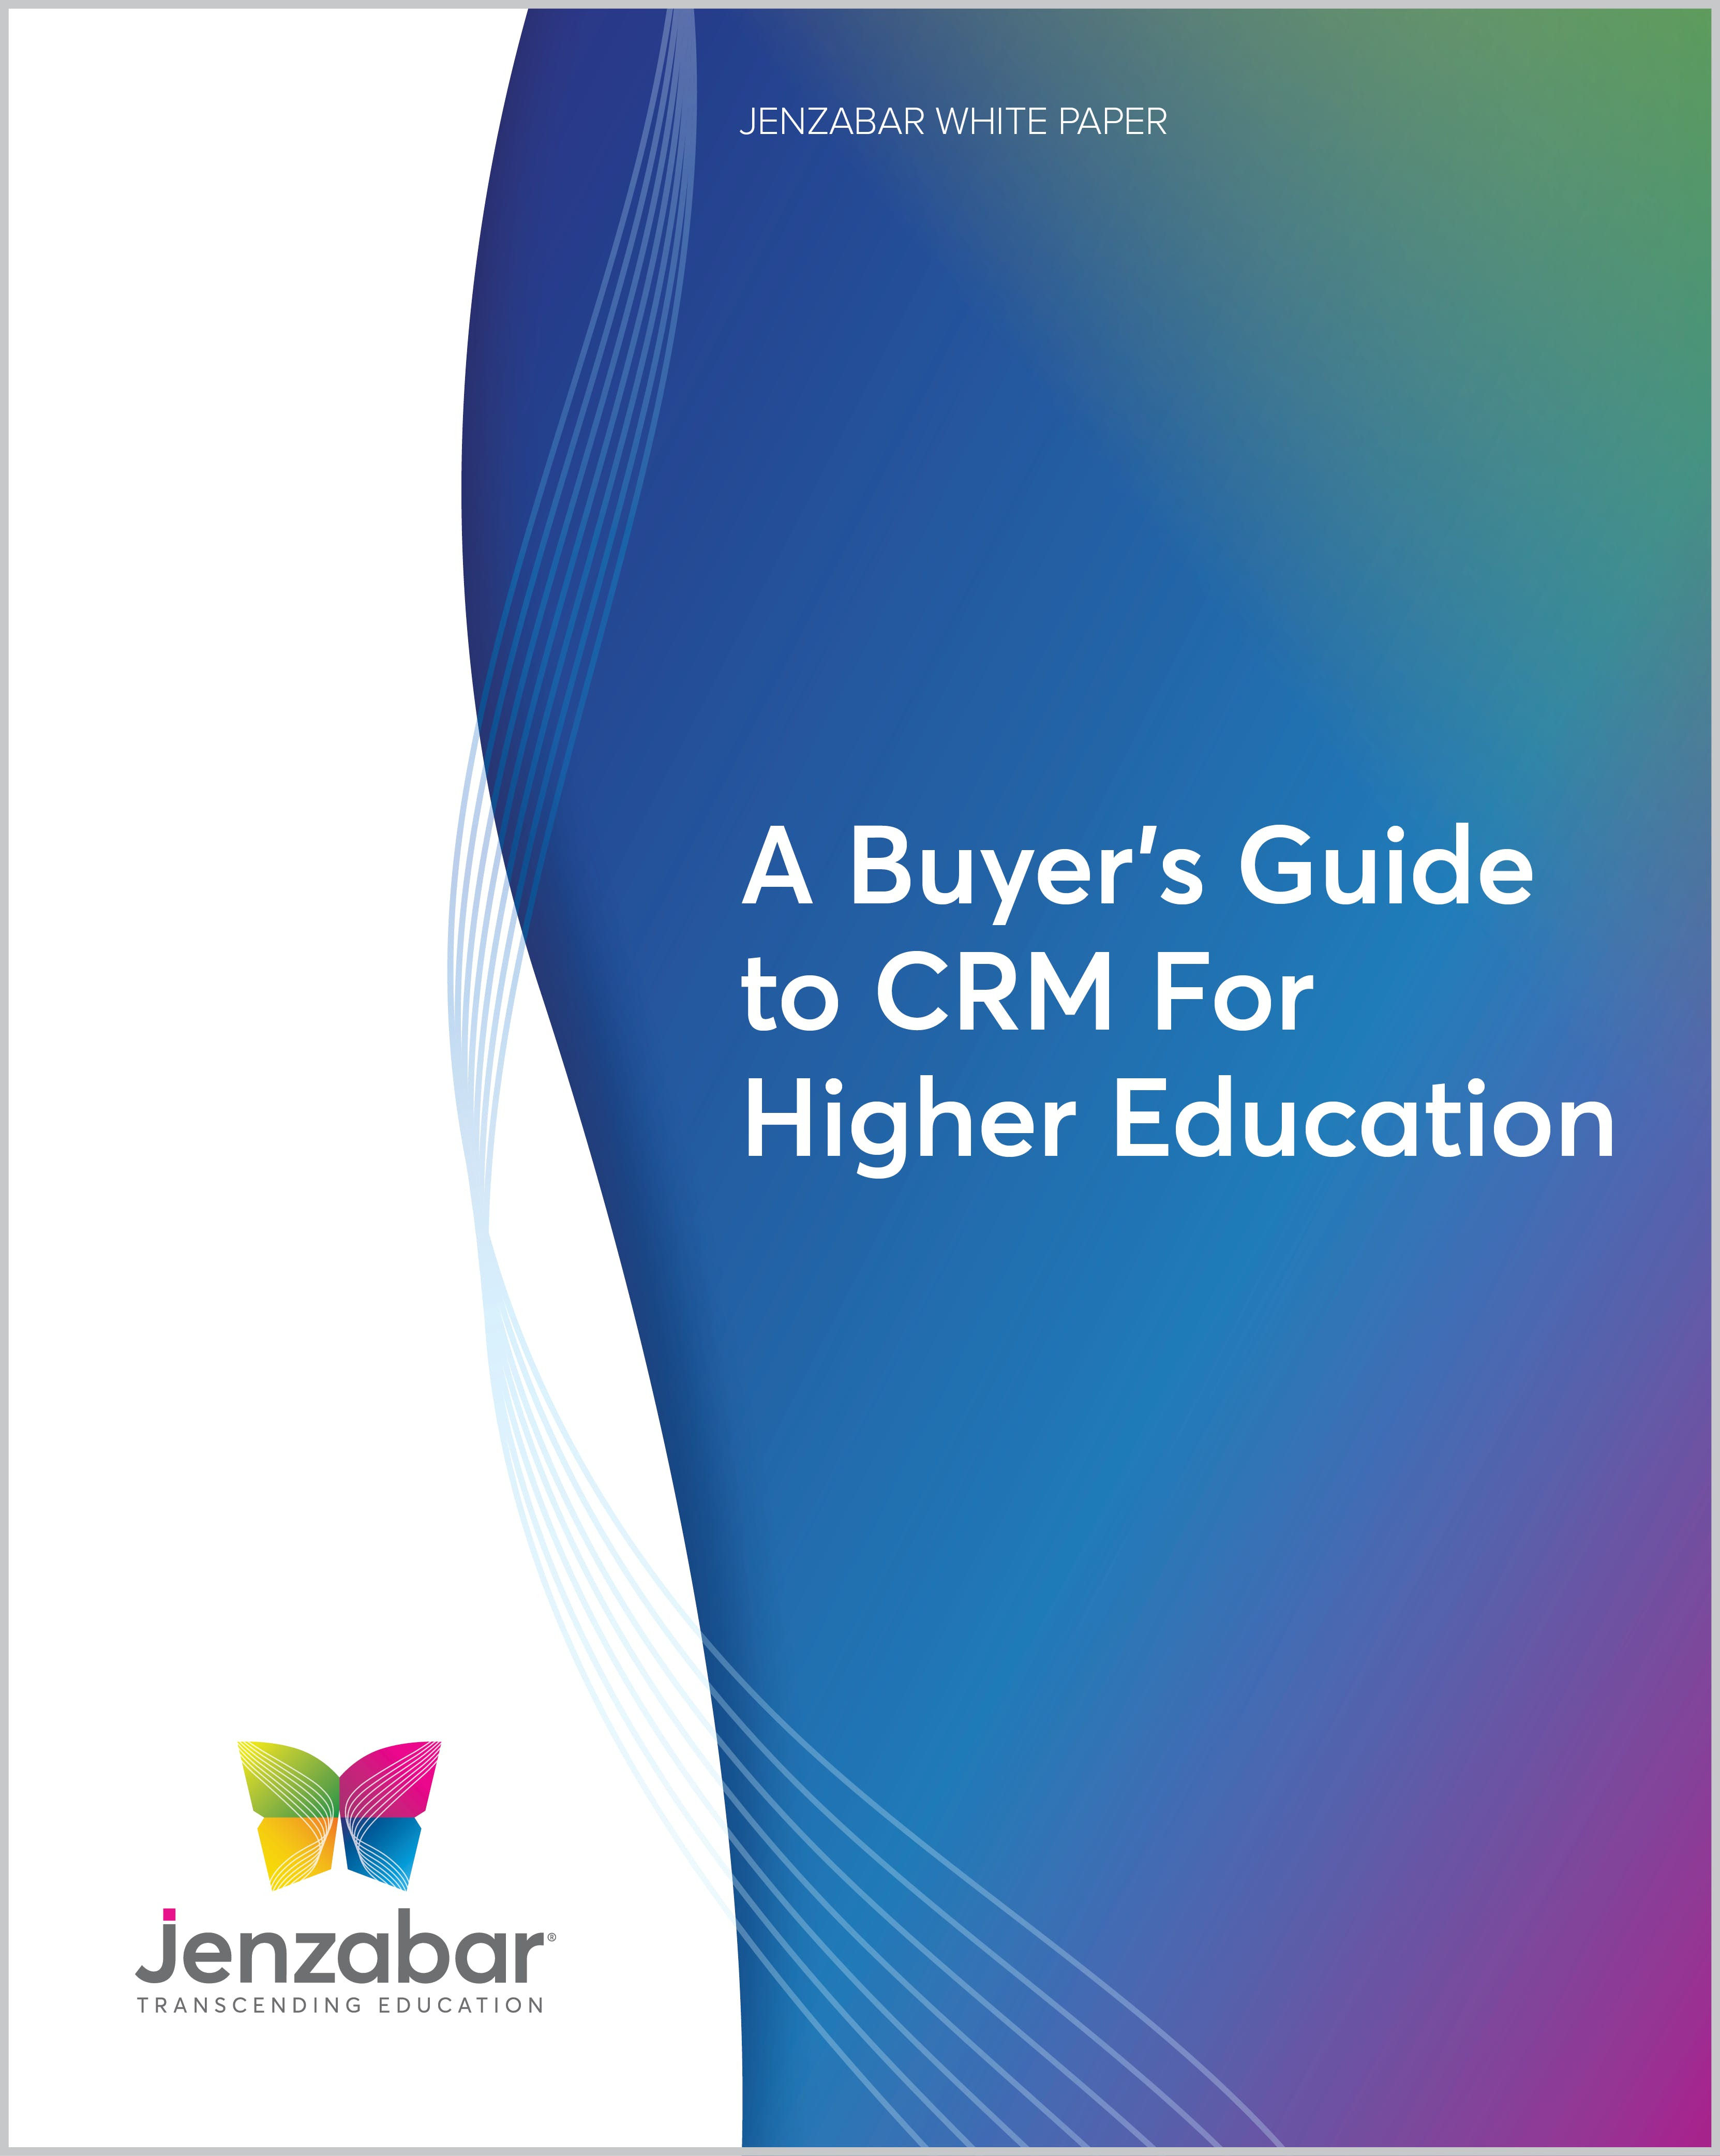 A Buyer's Guide to CRM For Higher Education